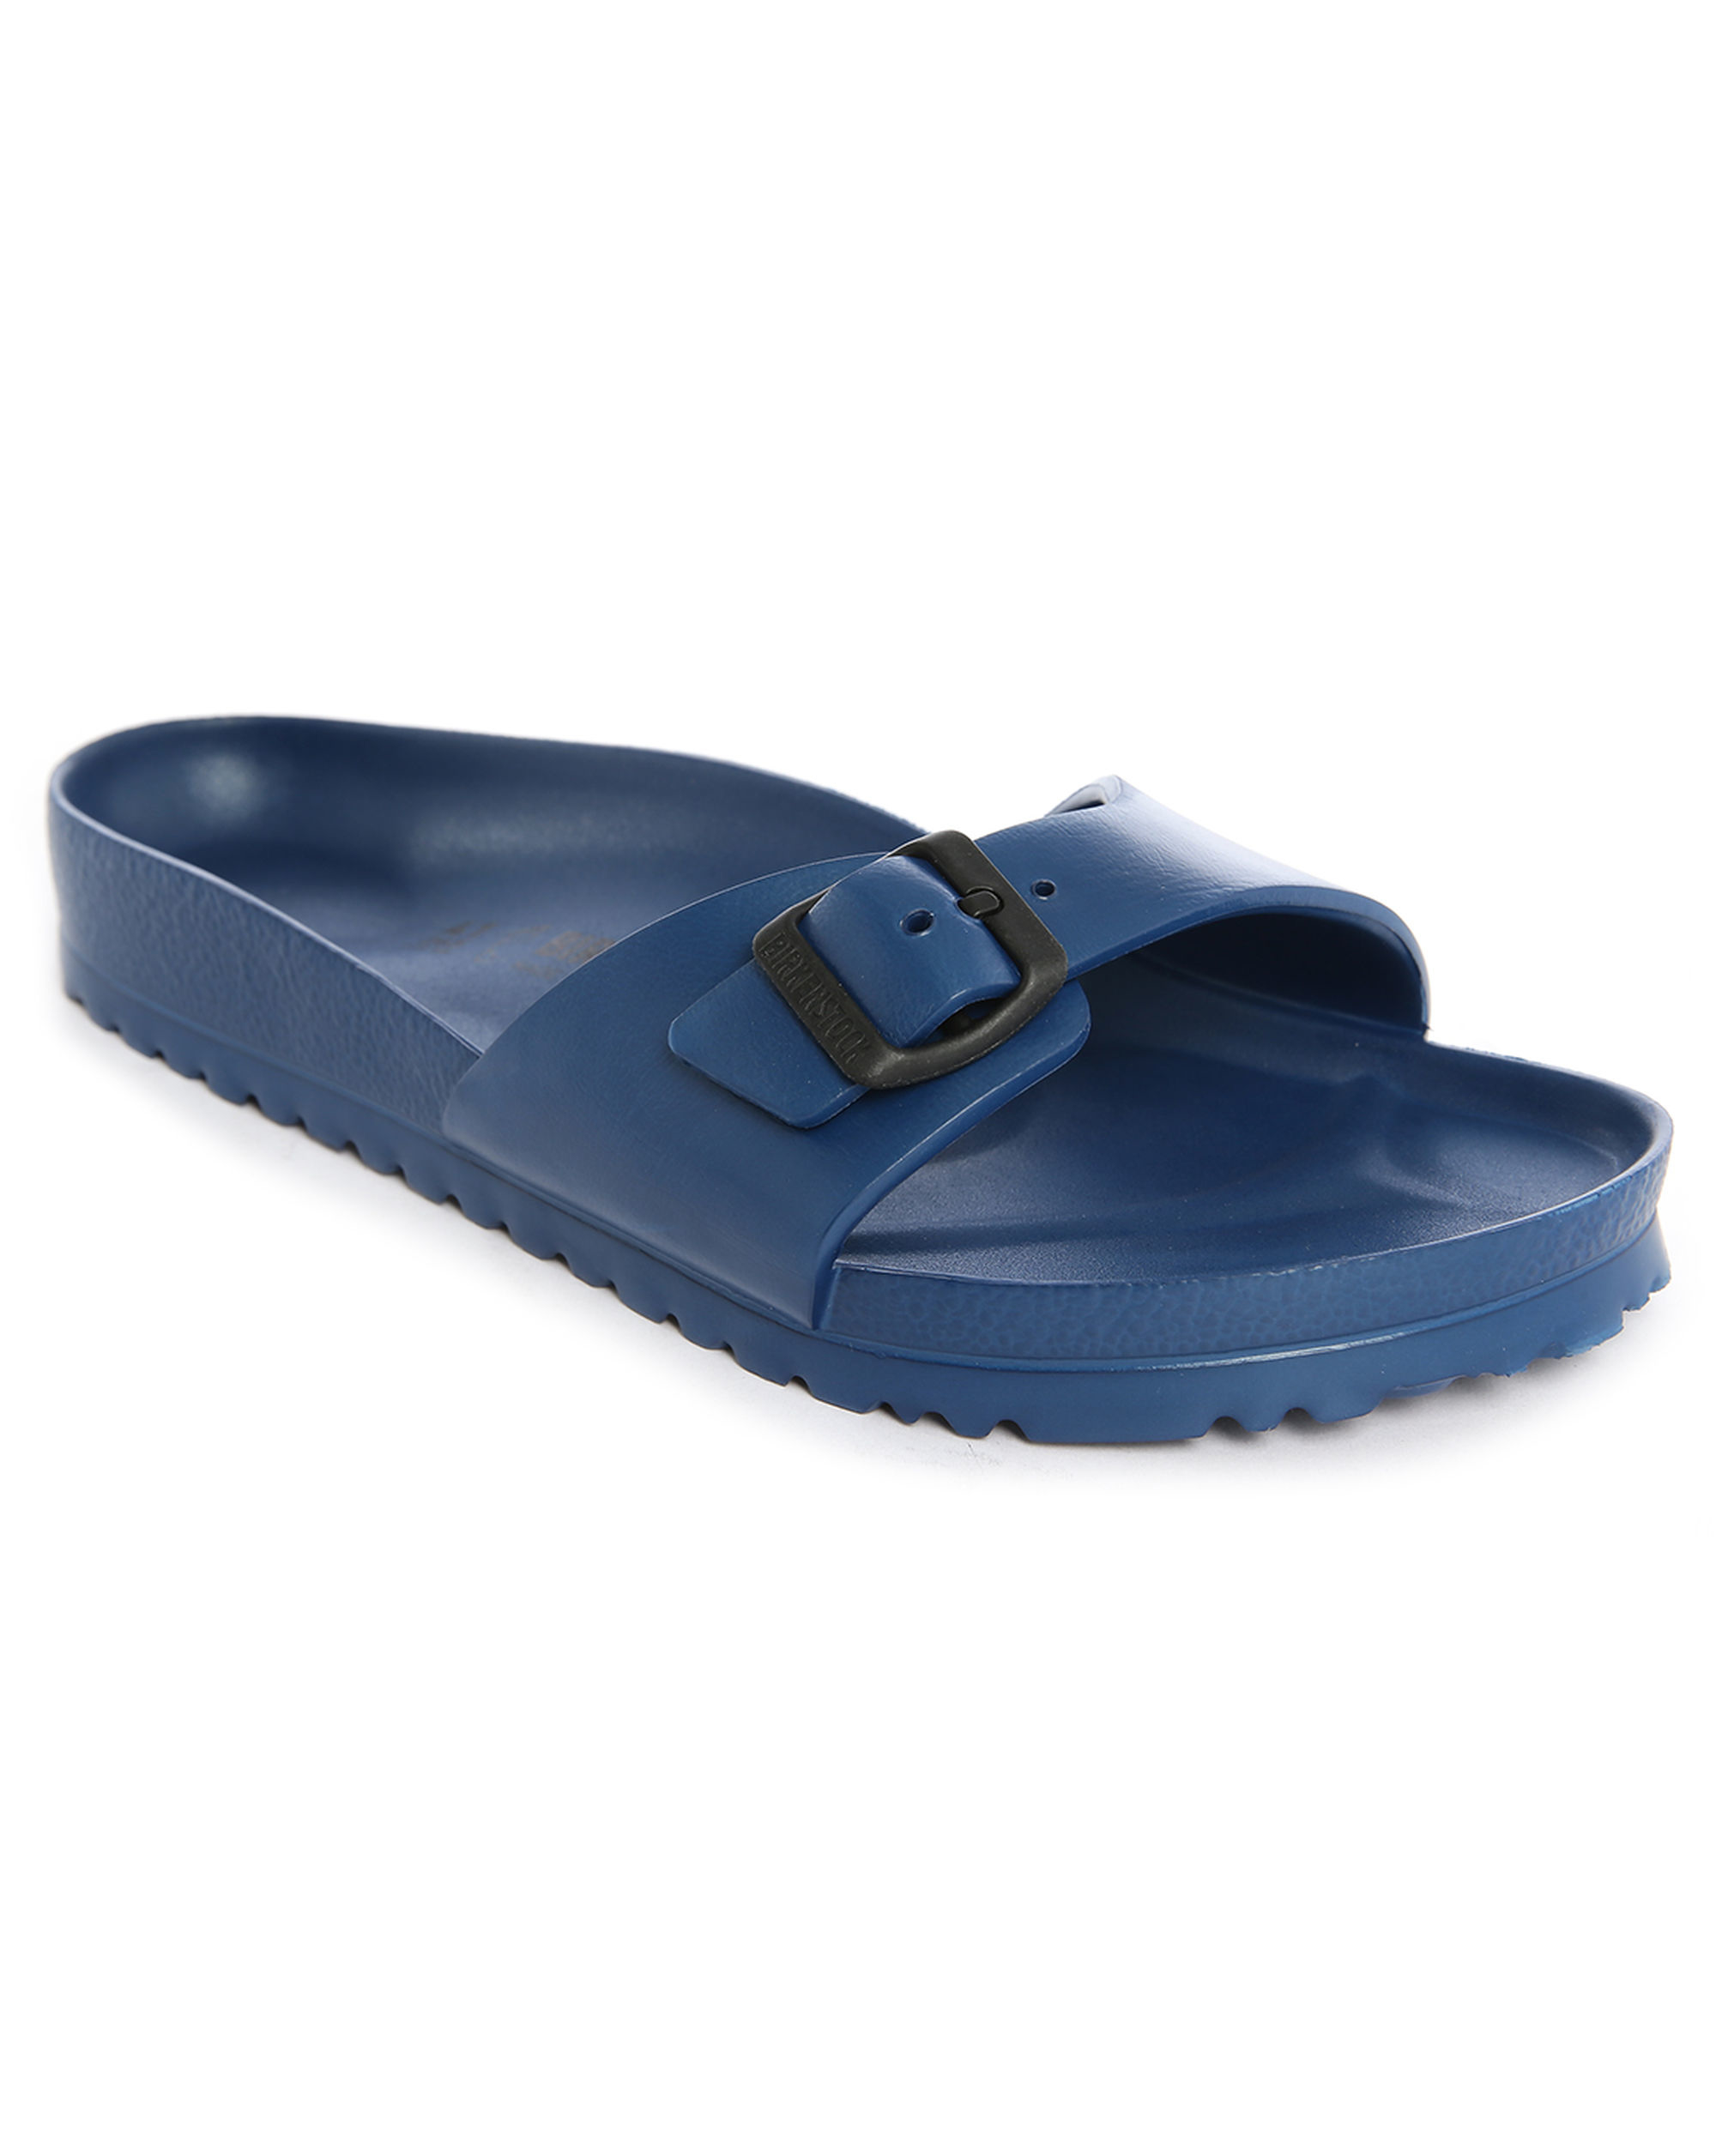 Elegant Womens Birkenstock Arizona Eva Narrow Navy Blue Twin Strap Sandals Shu